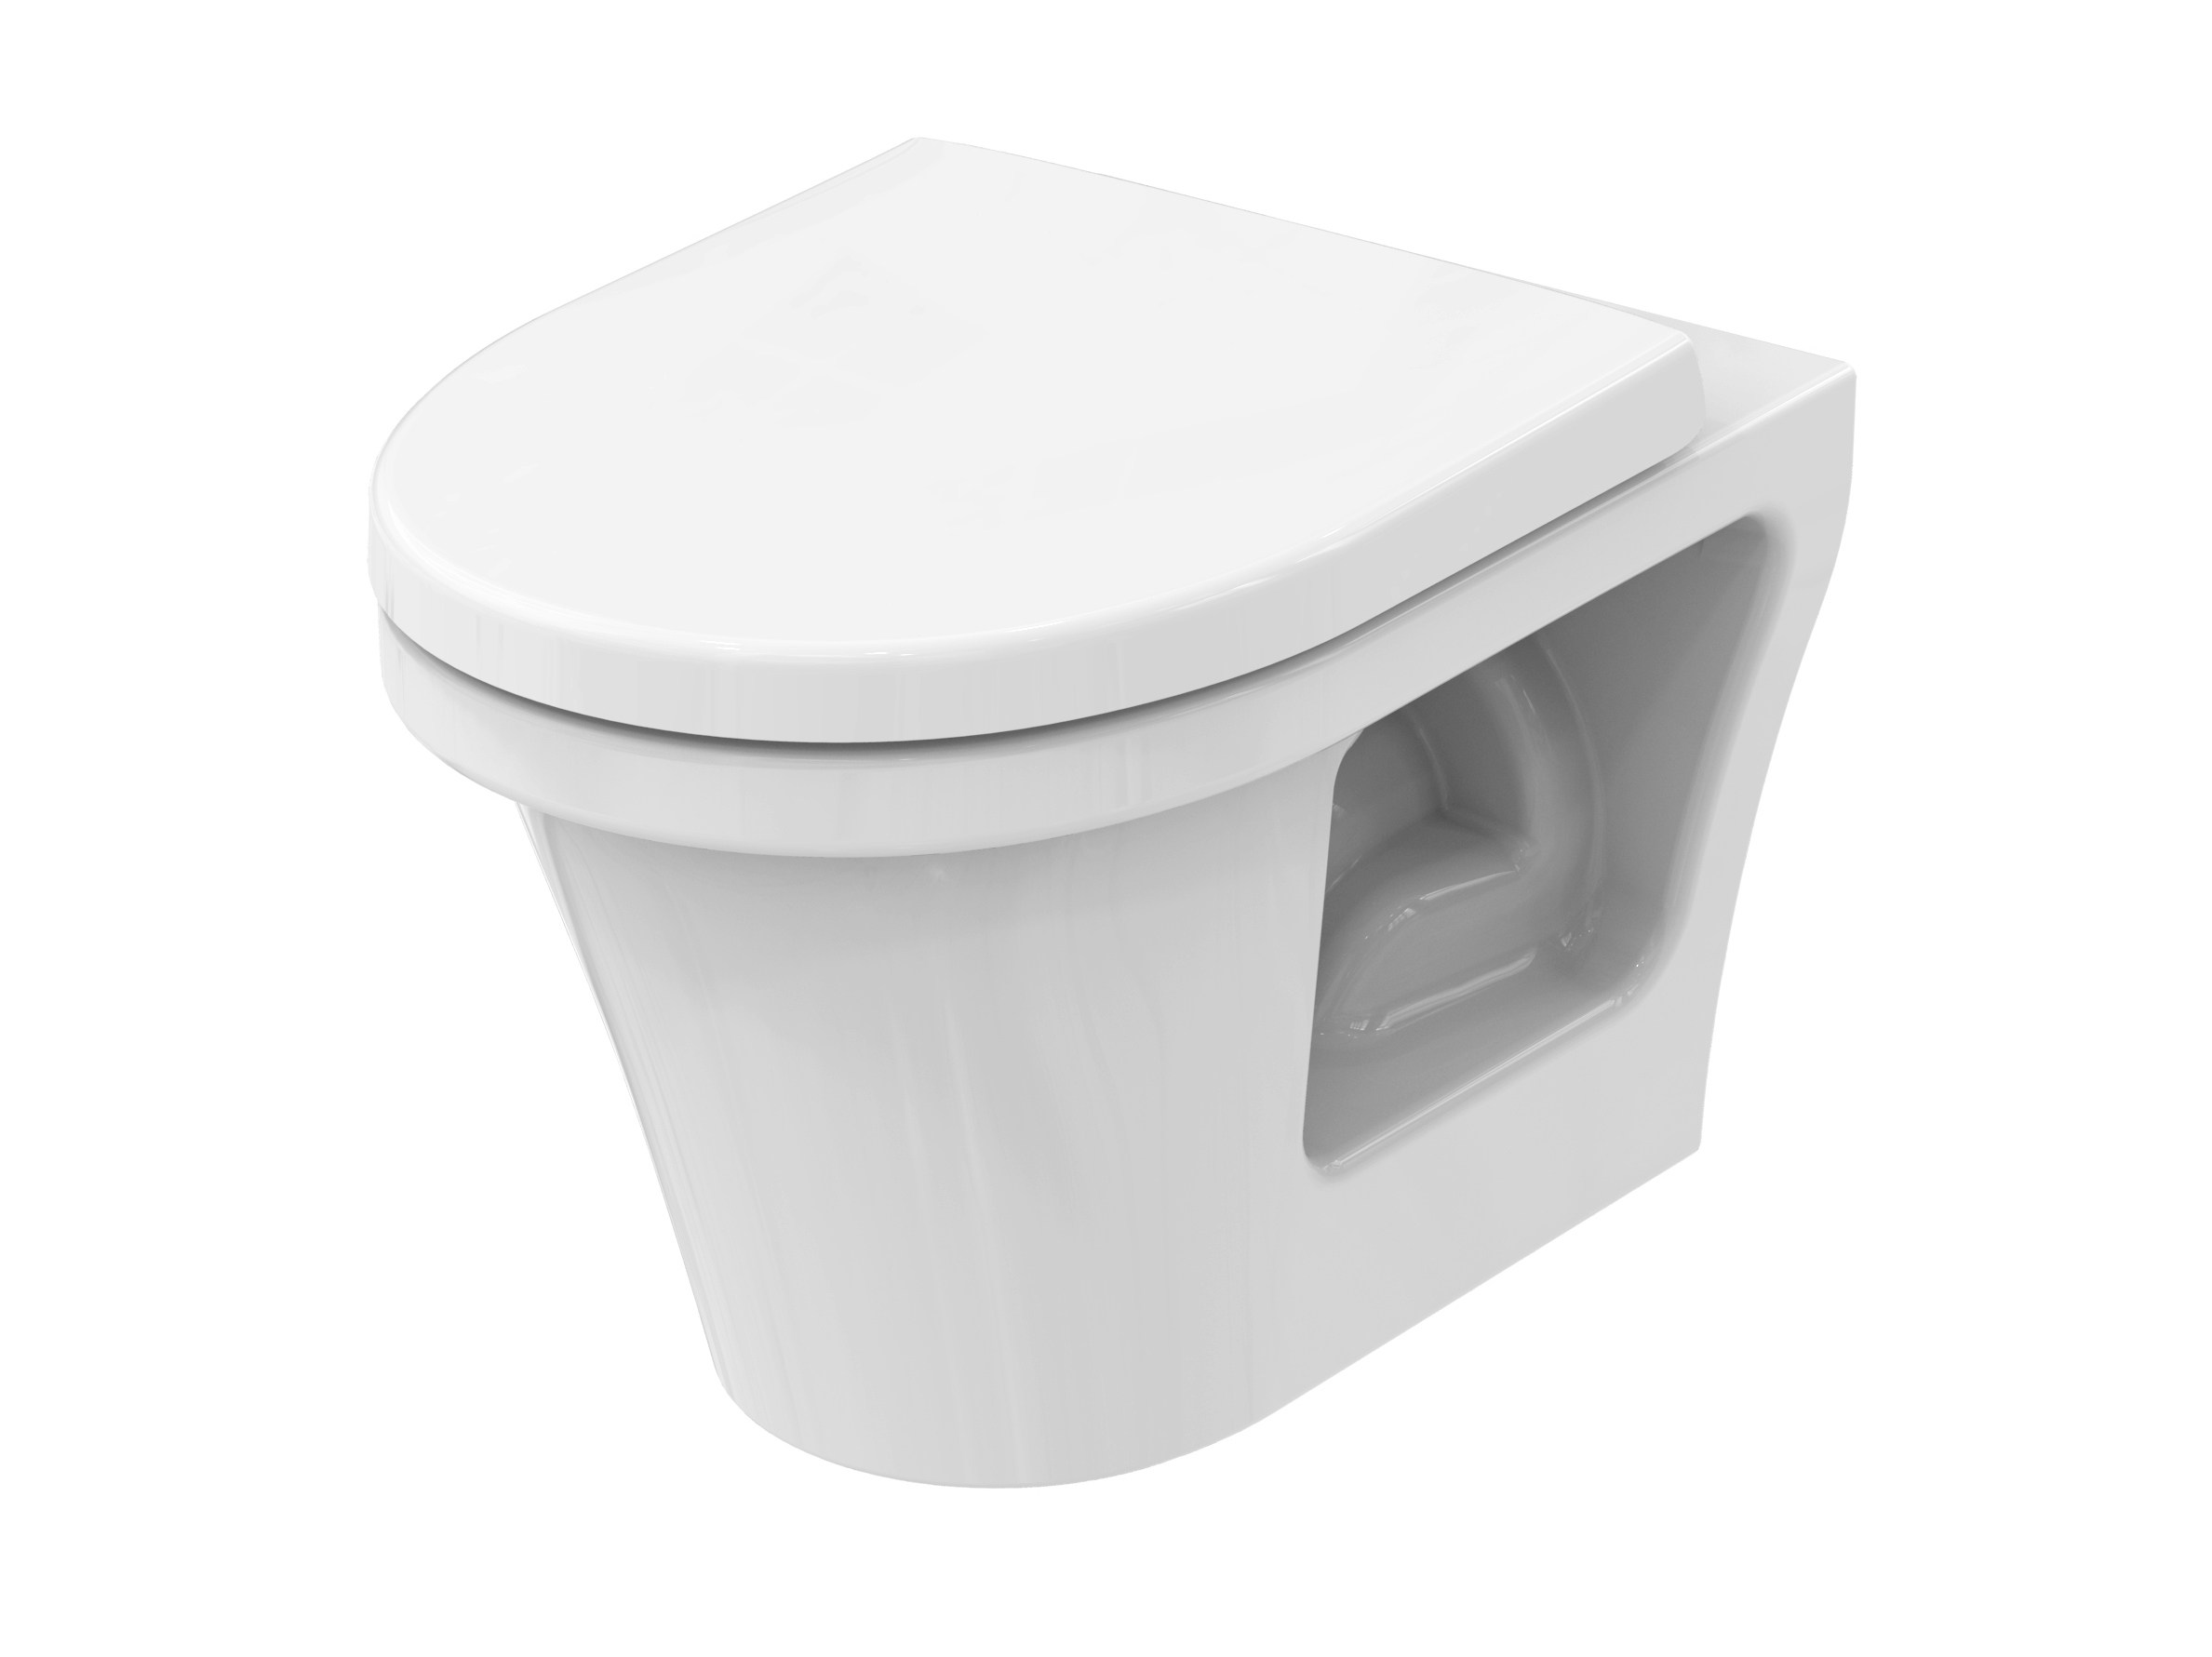 Toto Toilet | Toto Aquia One Piece Toilet | Back Outlet Toilet Toto